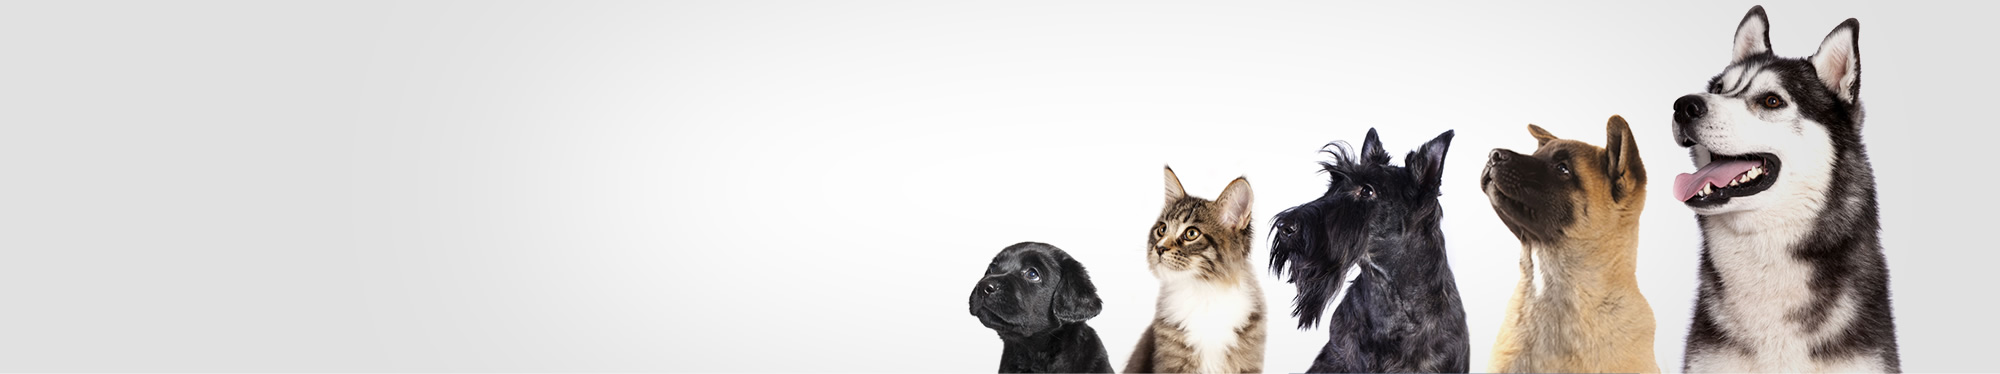 pet animals veterinary services northland